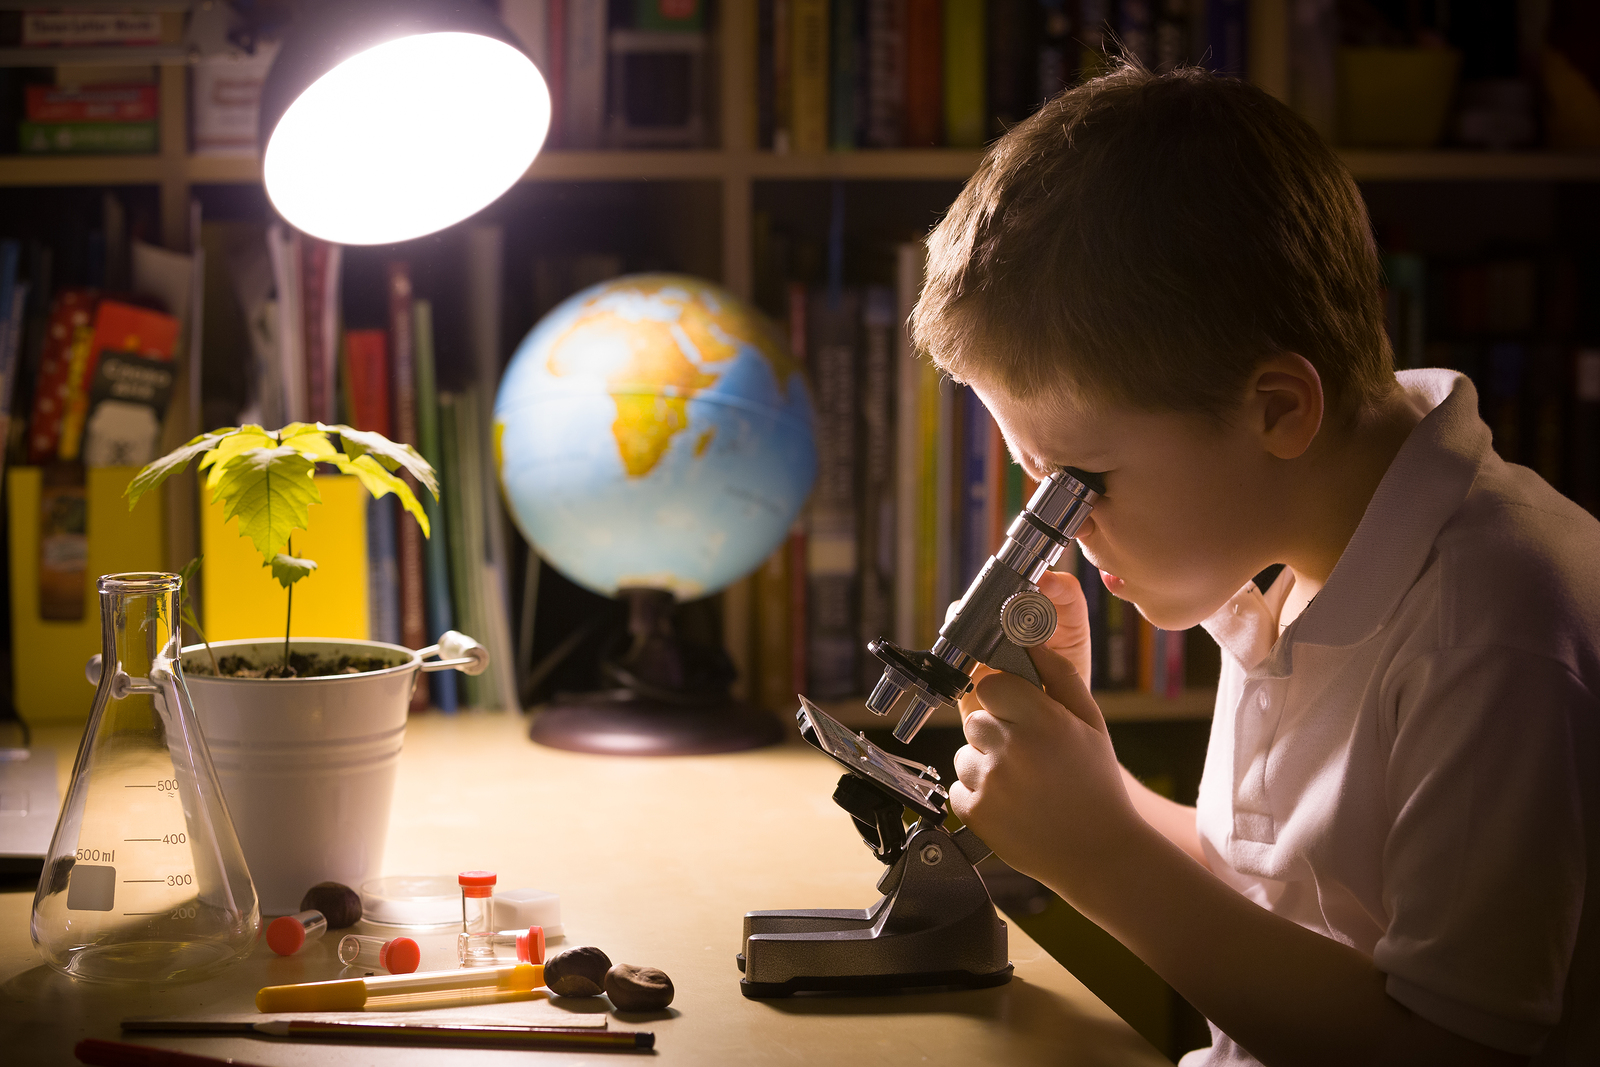 Try These 3 Fun Science Activities With Your Kids